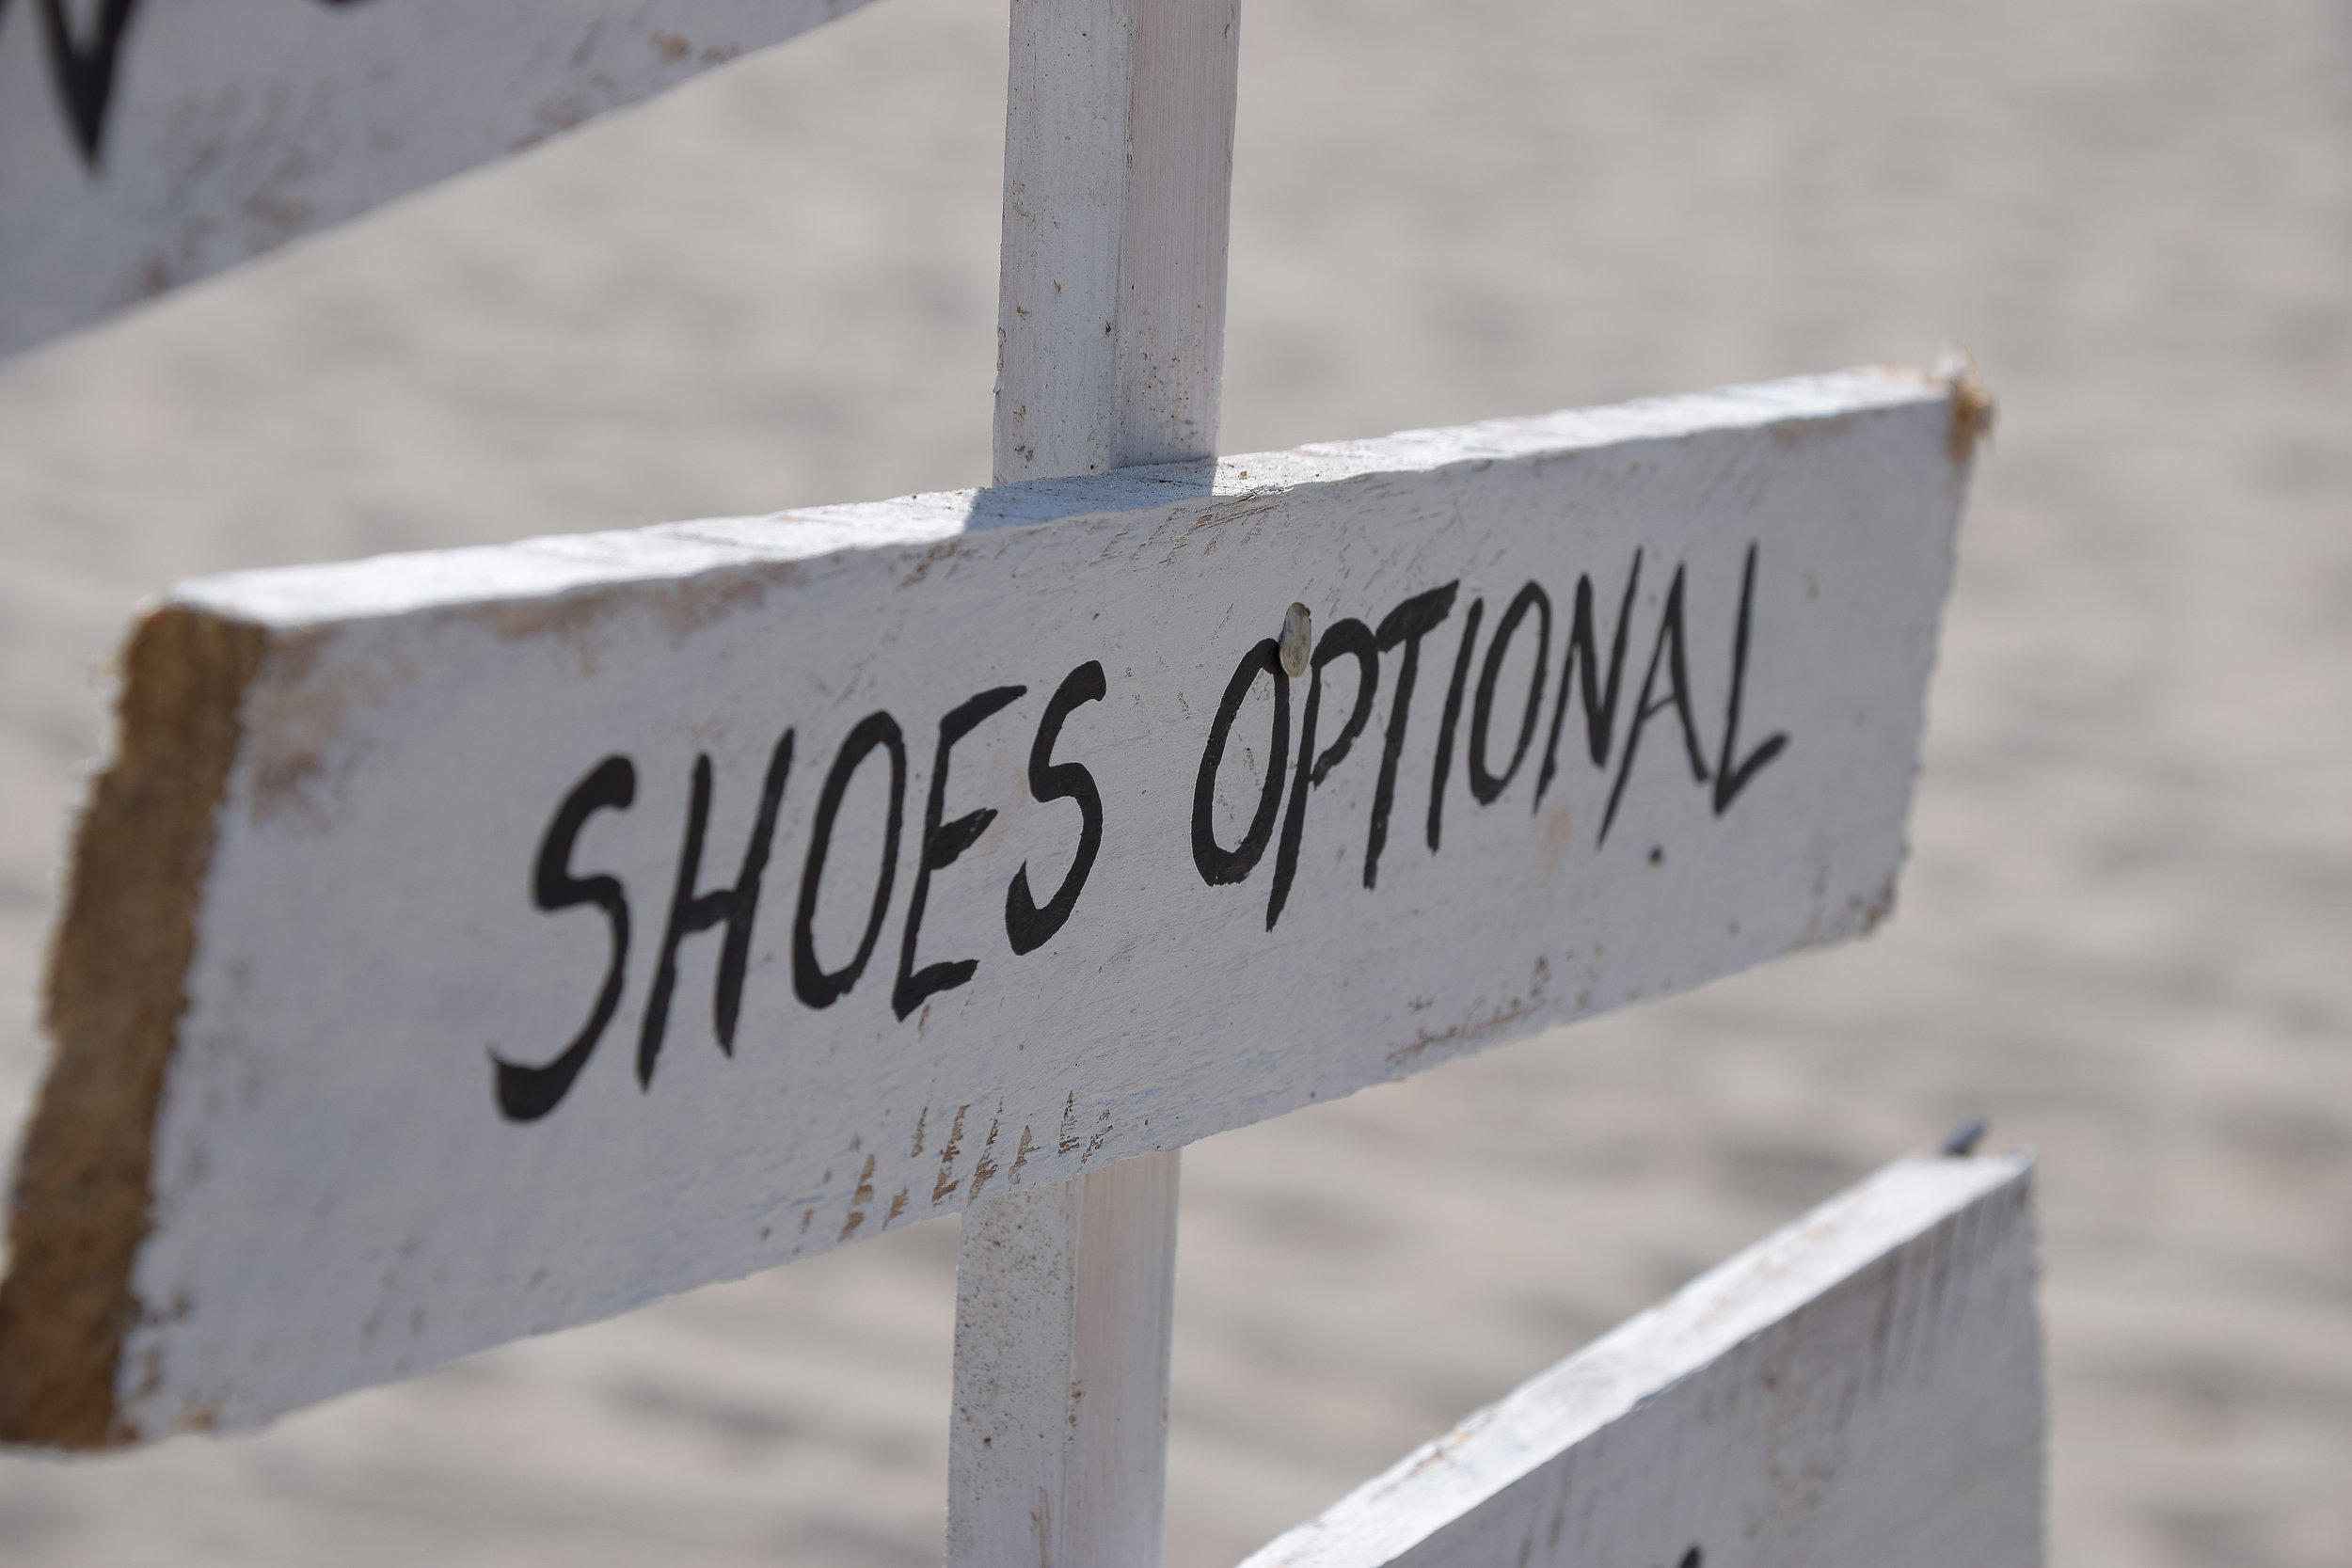 Shoes optional sign at entrance to beach wedding.